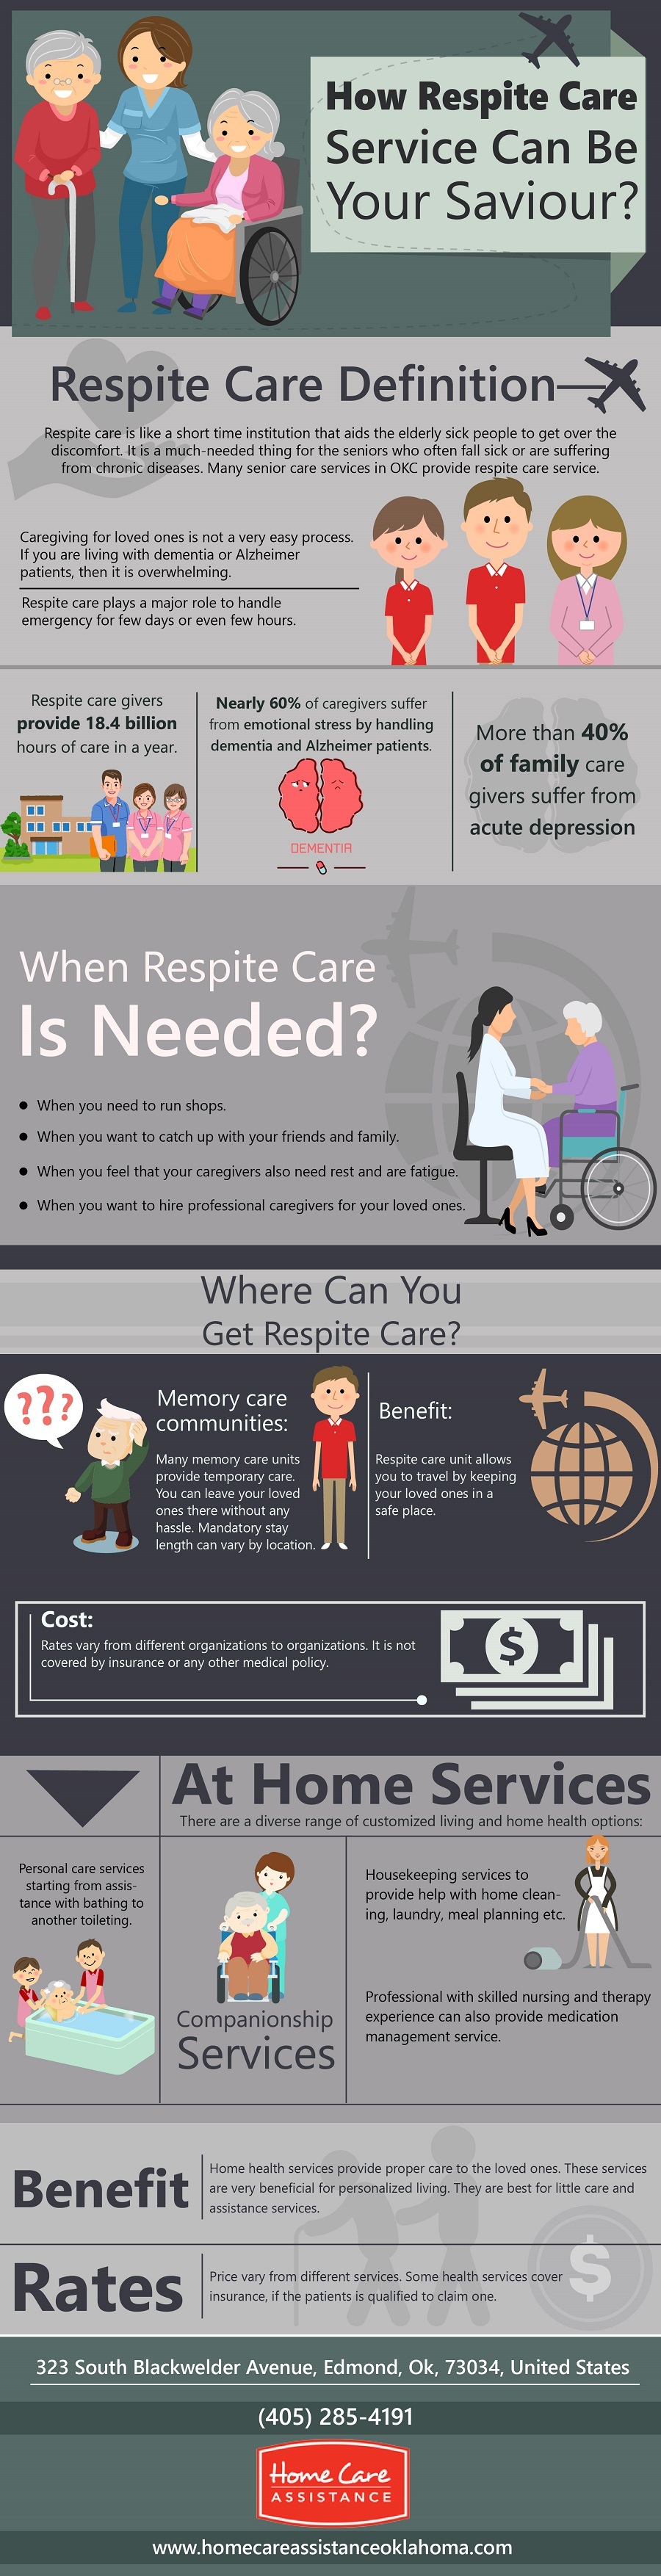 How Respite Care Service Can Be Your Saviour? (Infographic)